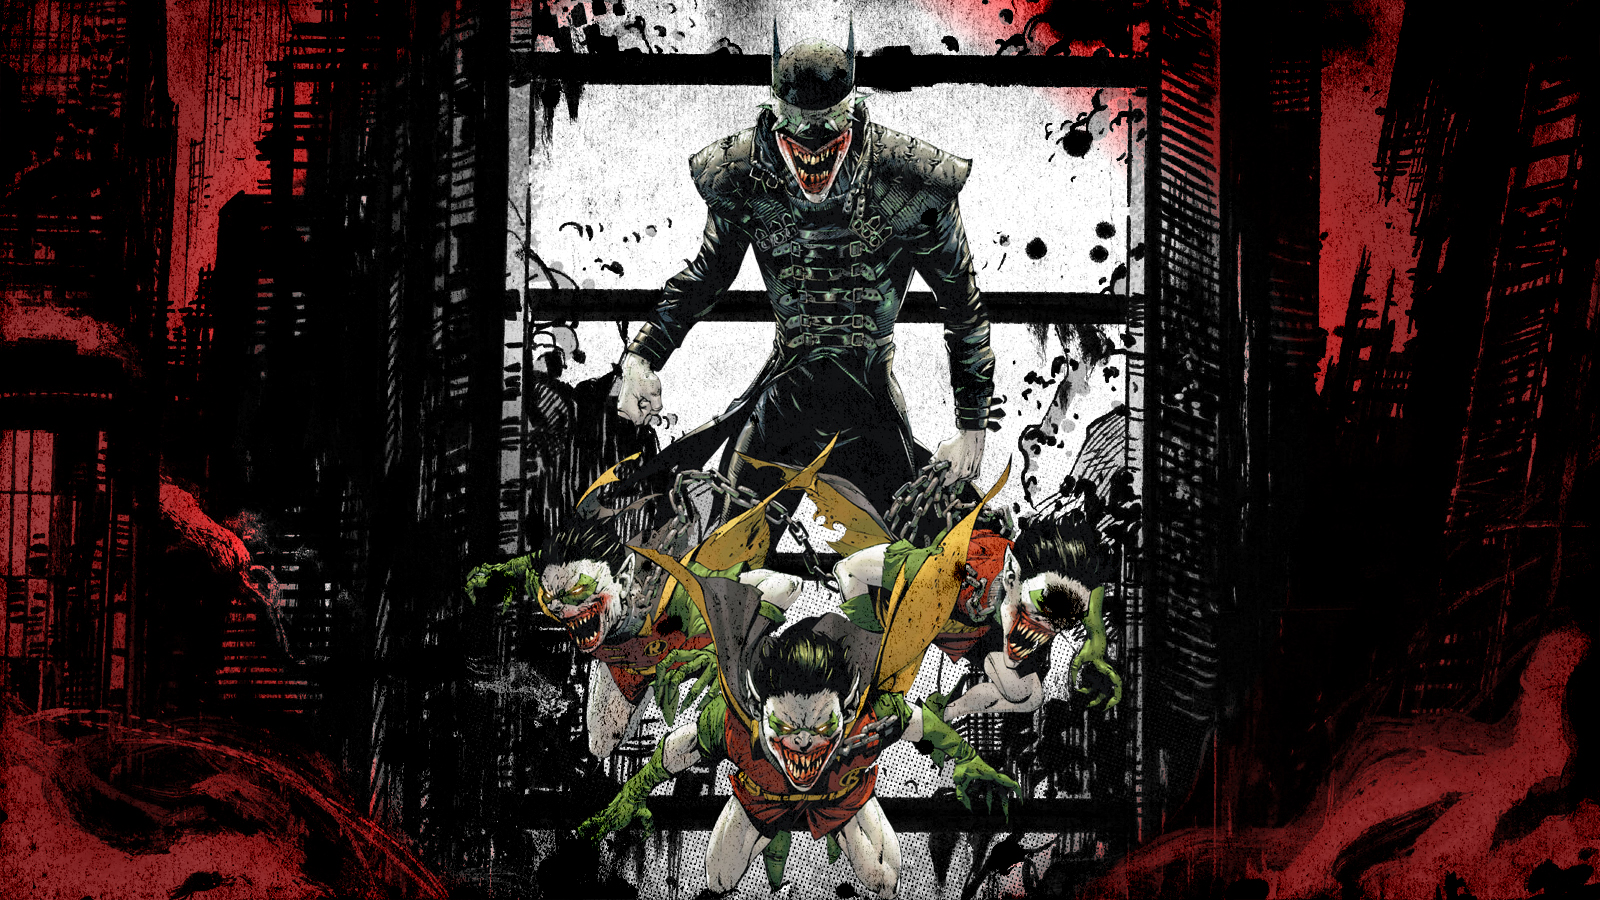 The Batman Who Laughs Wallpaper By Franky4fingersx2 On Deviantart